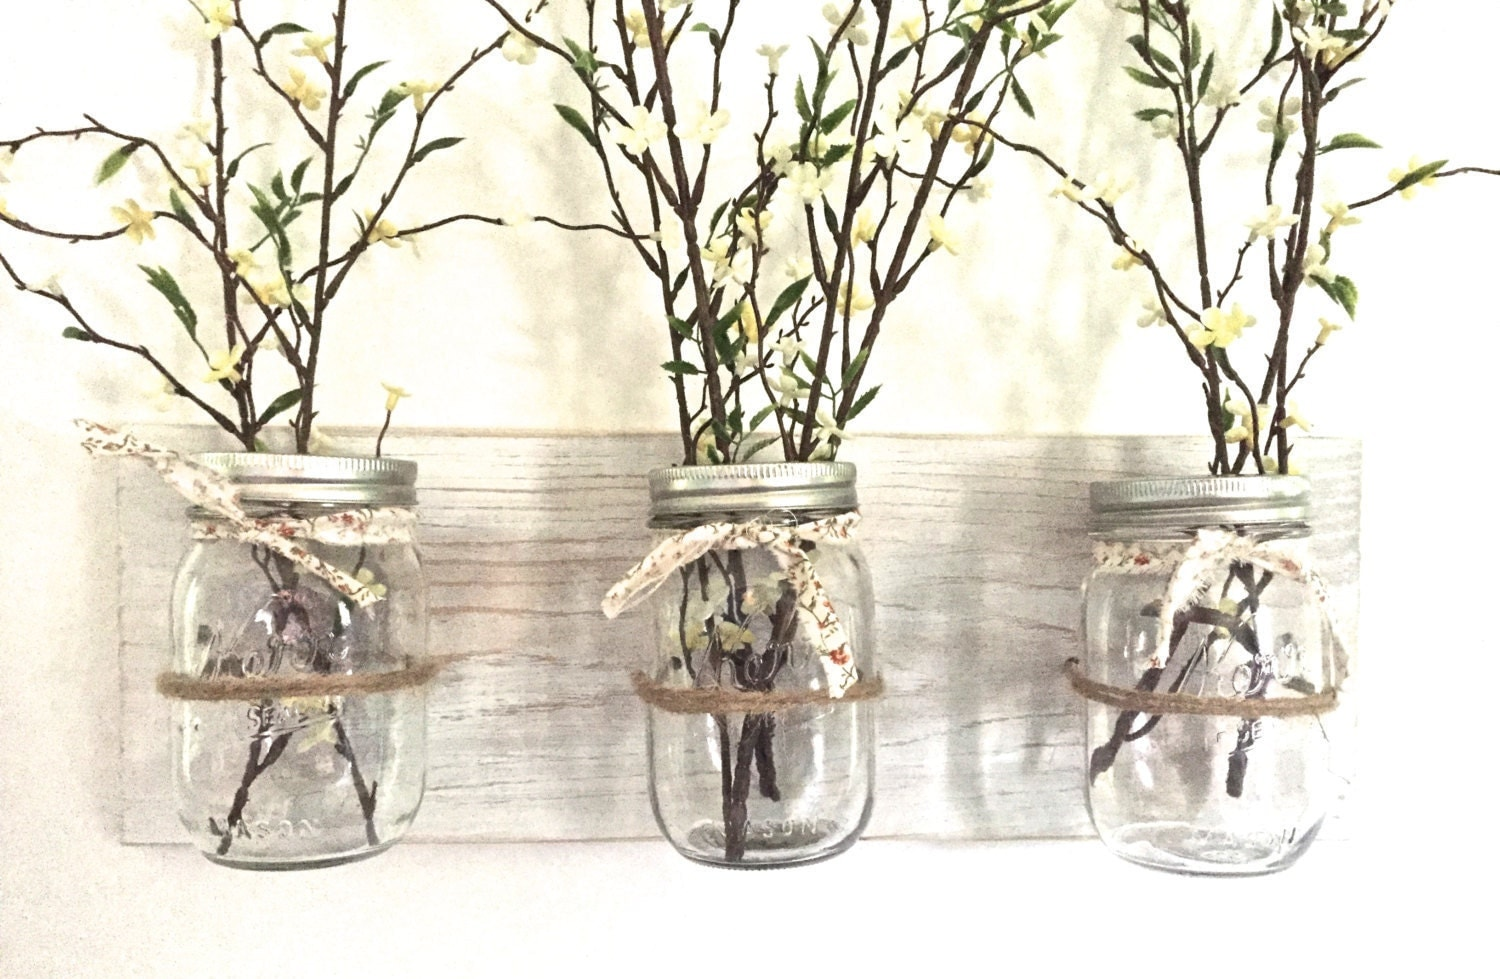 Wall Decor With Mason Jars : Mason jar wall decor hanging vases kitchen storage